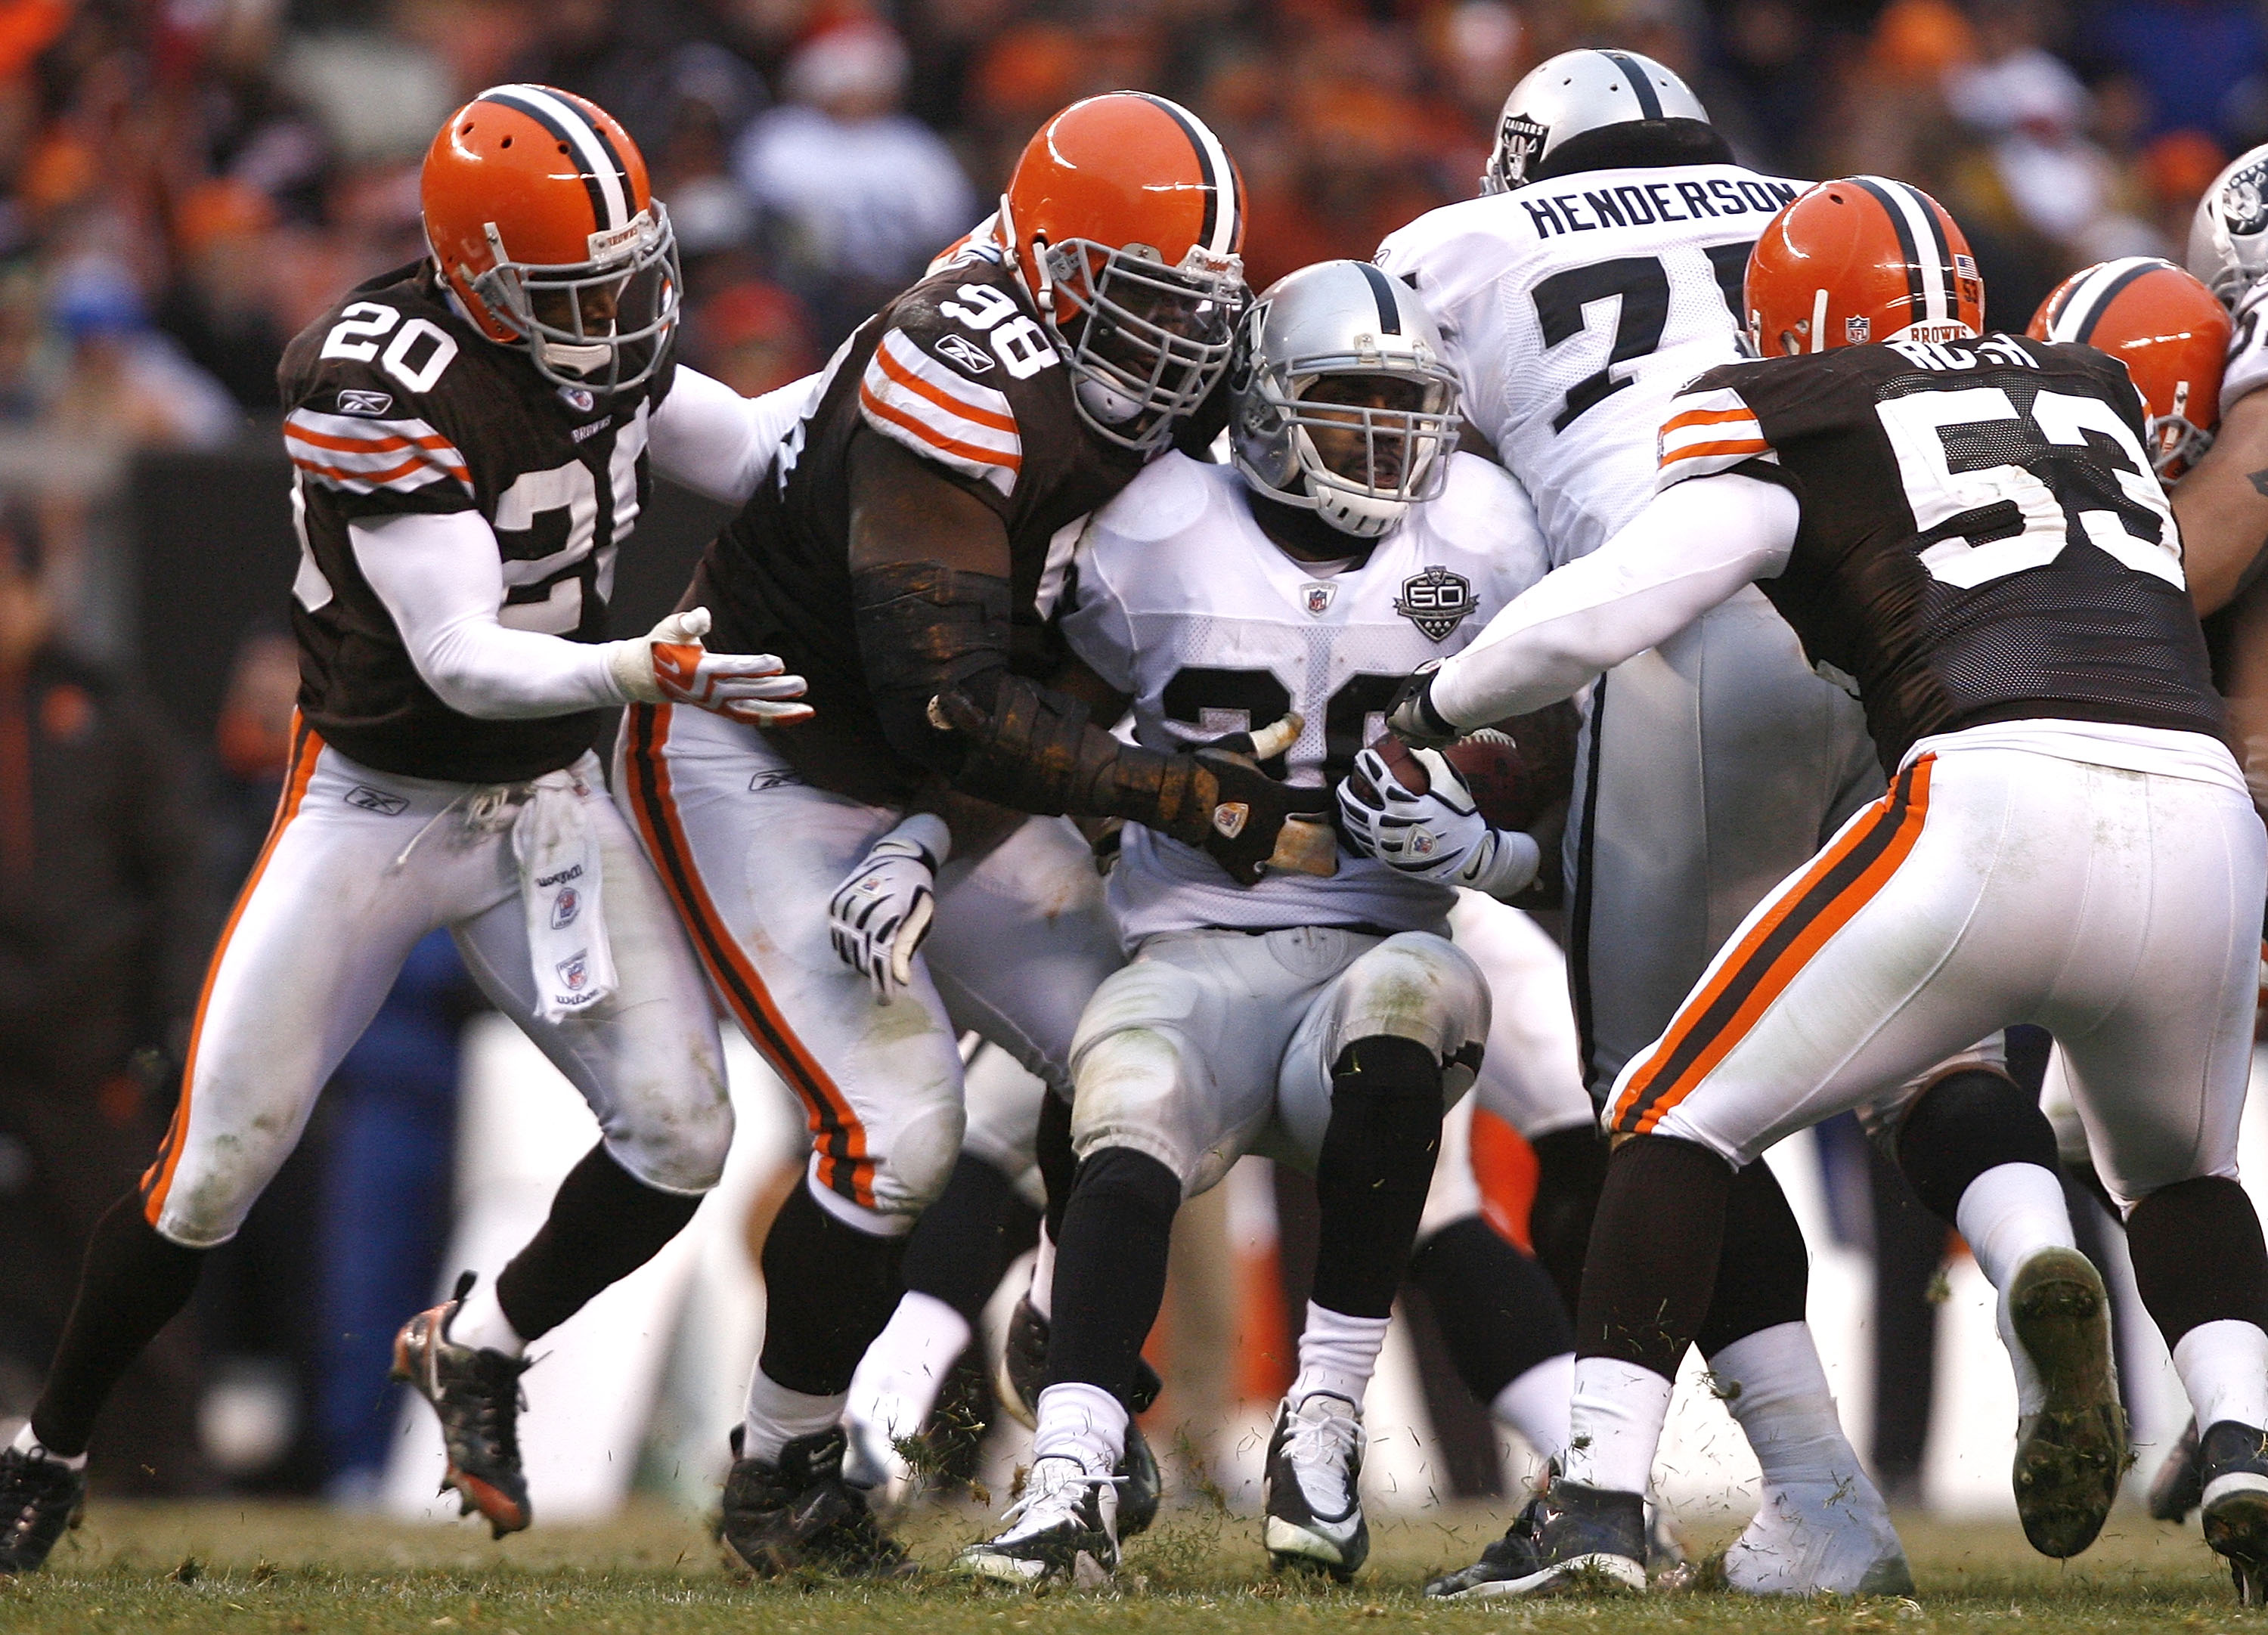 CLEVELAND - DECEMBER 27:  Mike Adams #20, Robaire Smith #98 and Matt Roth #53 of the Cleveland Browns tackle Darren McFadden #20 of the Oakland Raiders at Cleveland Browns Stadium on December 27, 2009 in Cleveland, Ohio.  (Photo by Matt Sullivan/Getty Ima